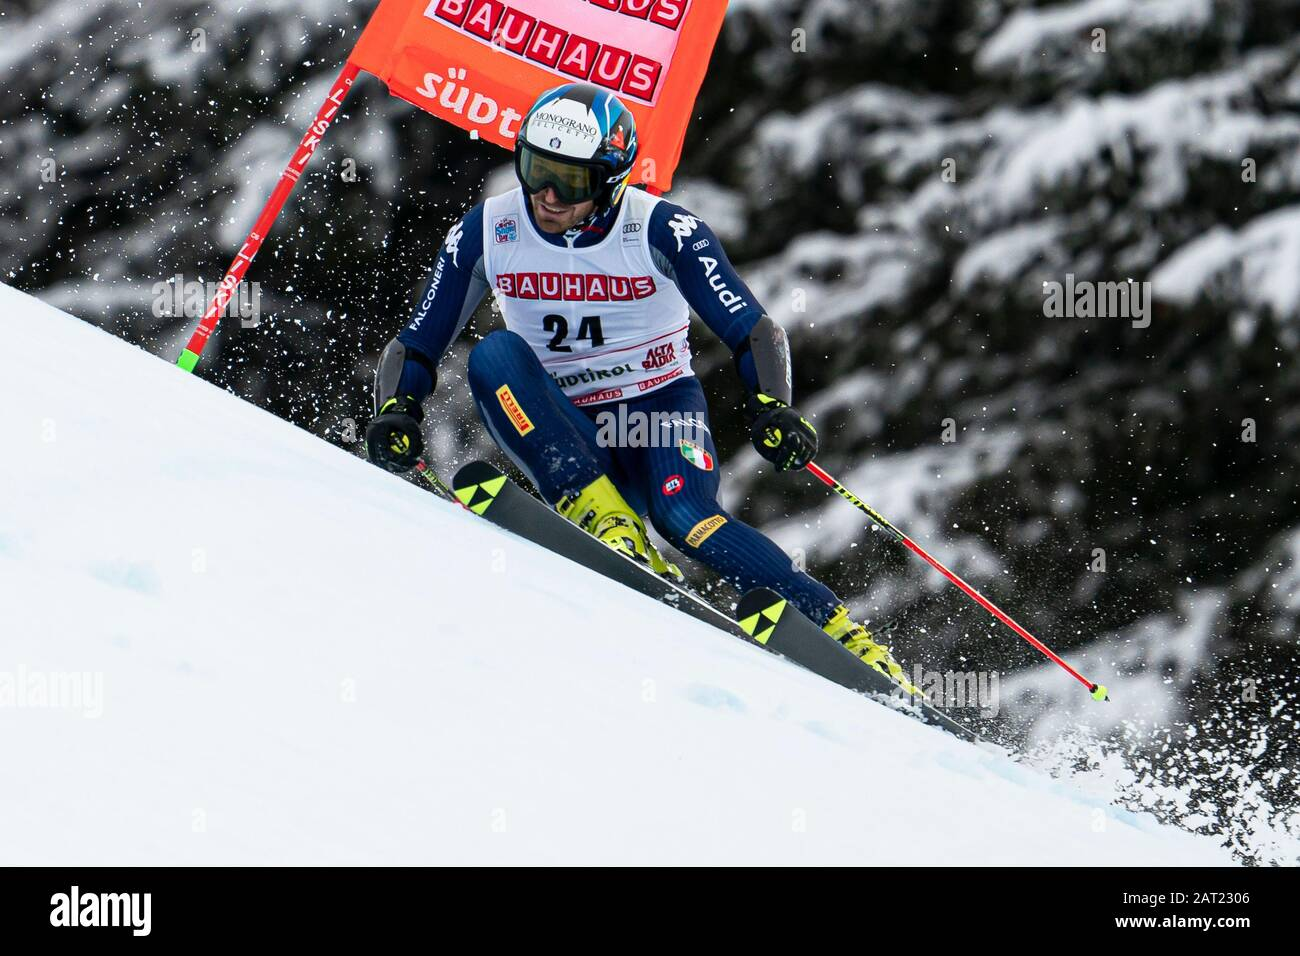 Alta Badia, Italy 22 December 2019.  MOELGG Manfred (Ita) competing in the Audi Fis Alpine Skiing World Cup Men's Giant Slalom on the Gran Risa Course Stock Photo